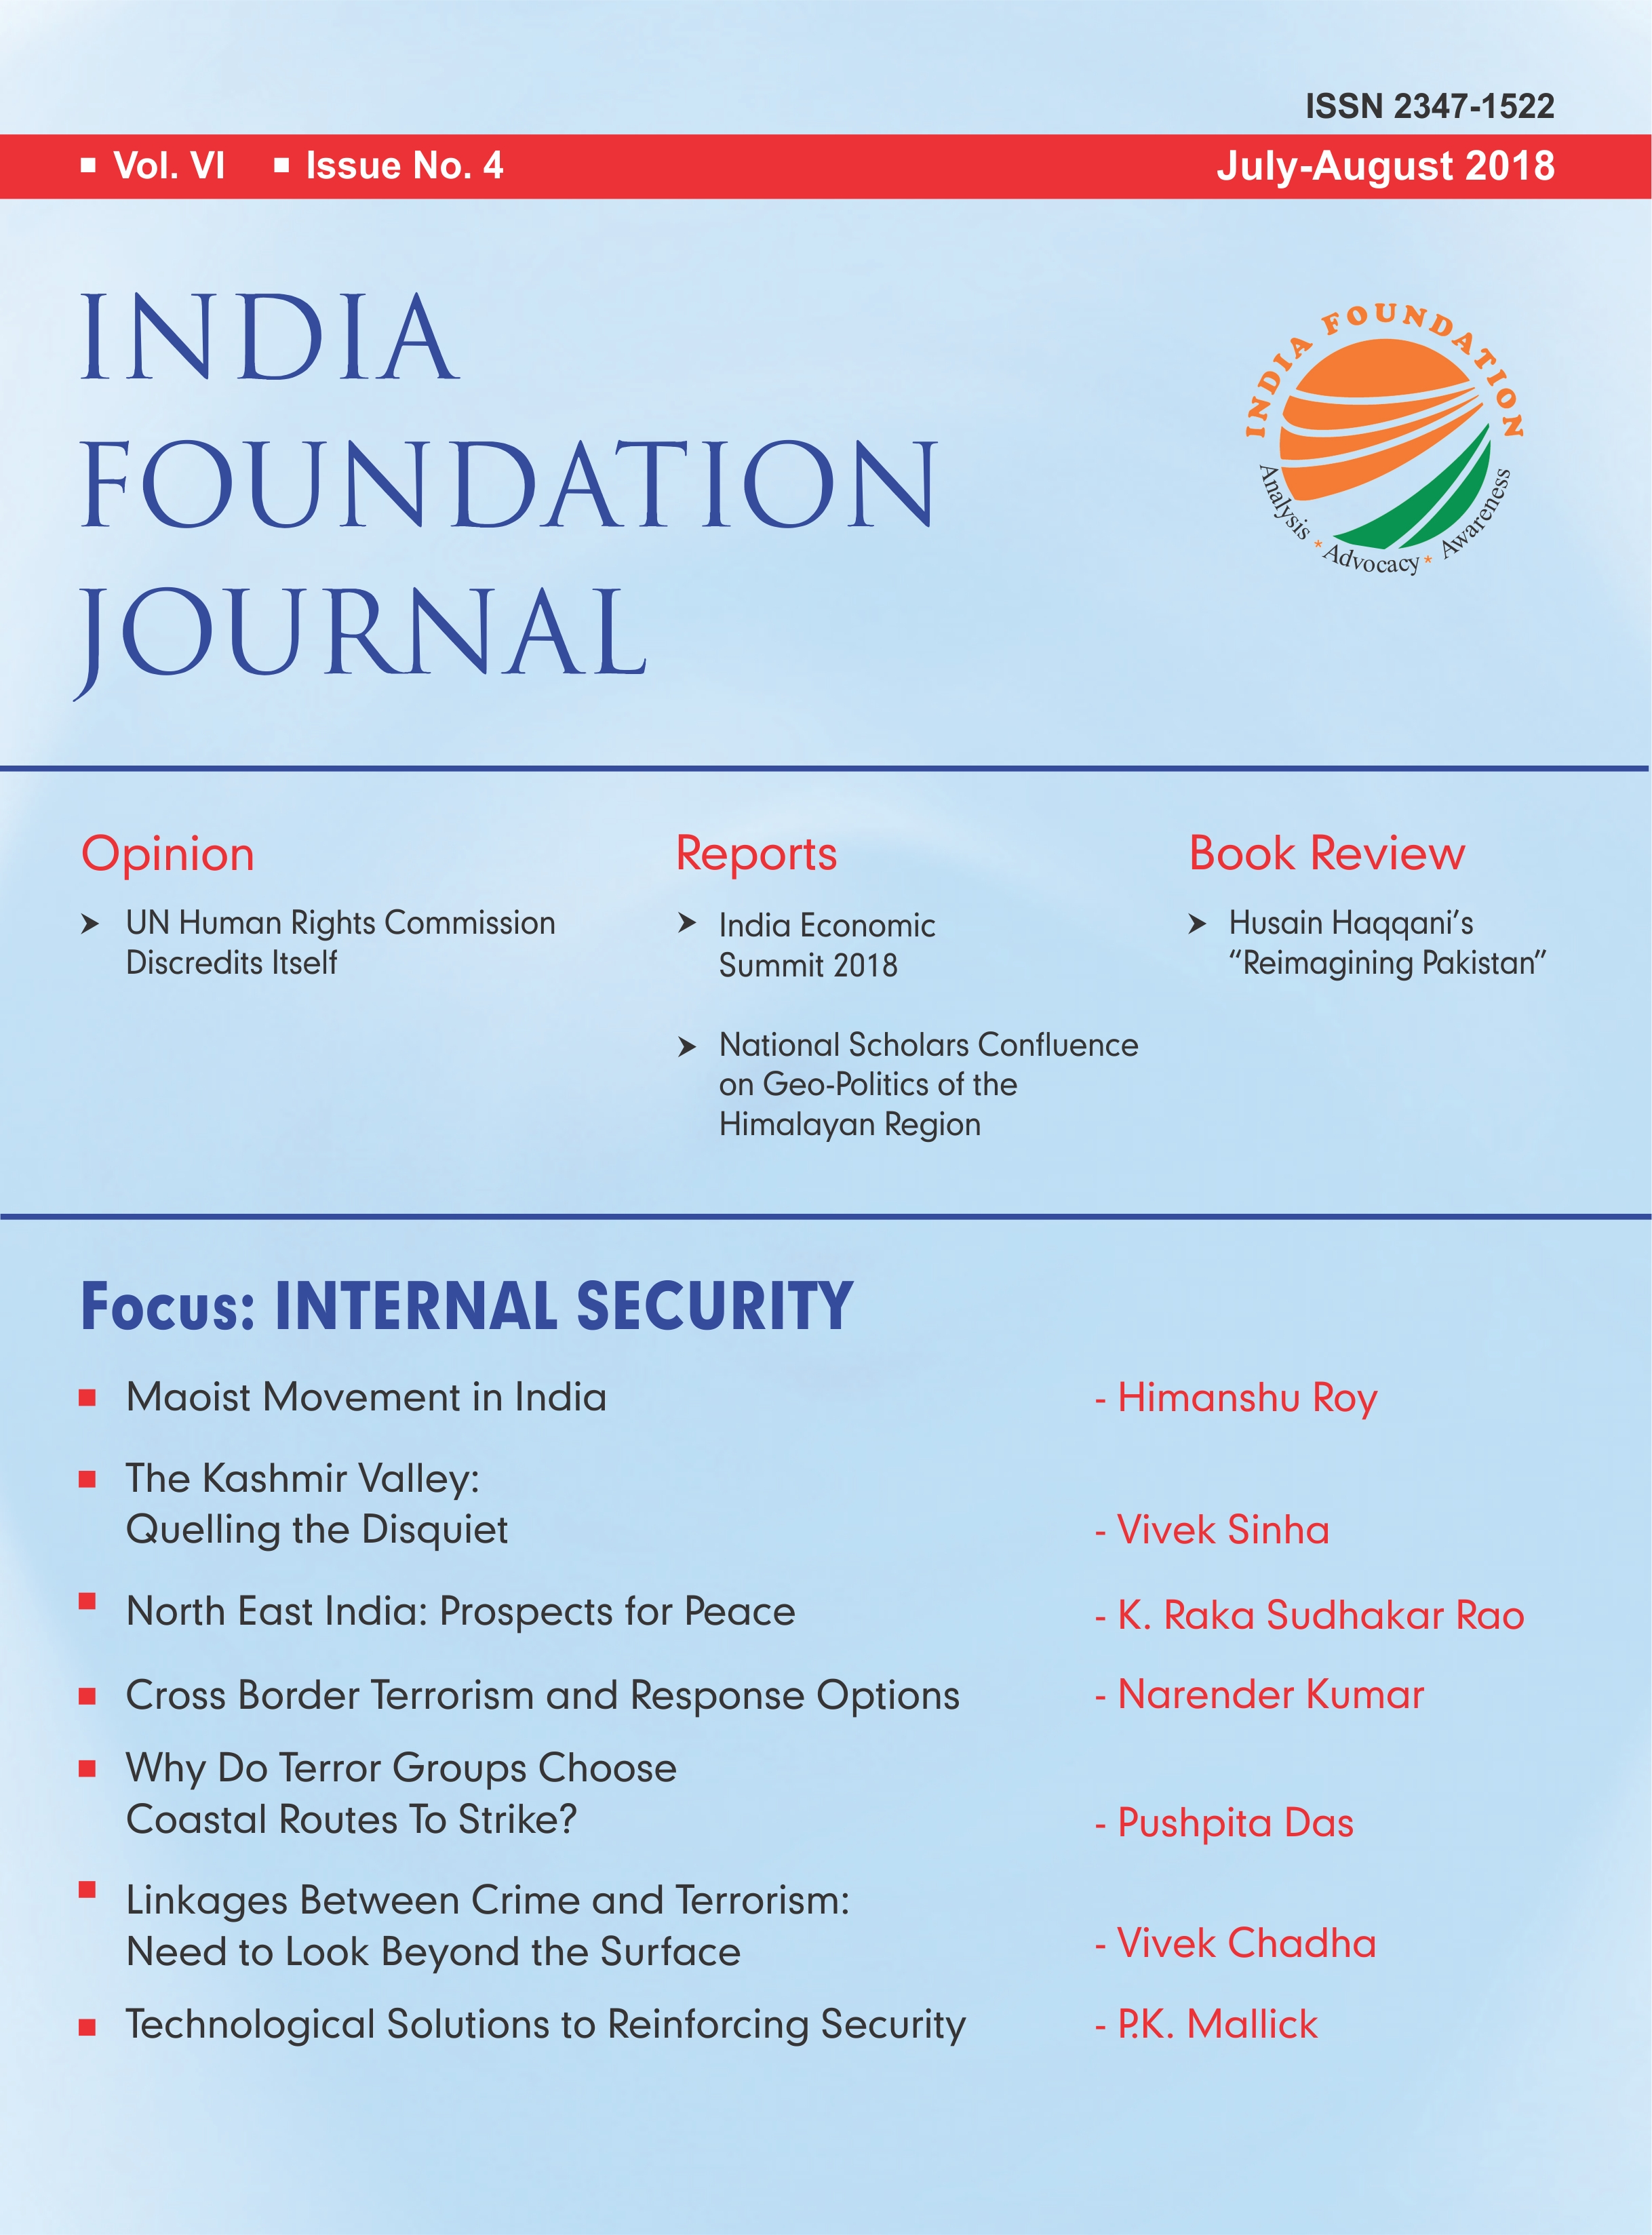 INDIA FOUNDATION JOURNAL July August 2018